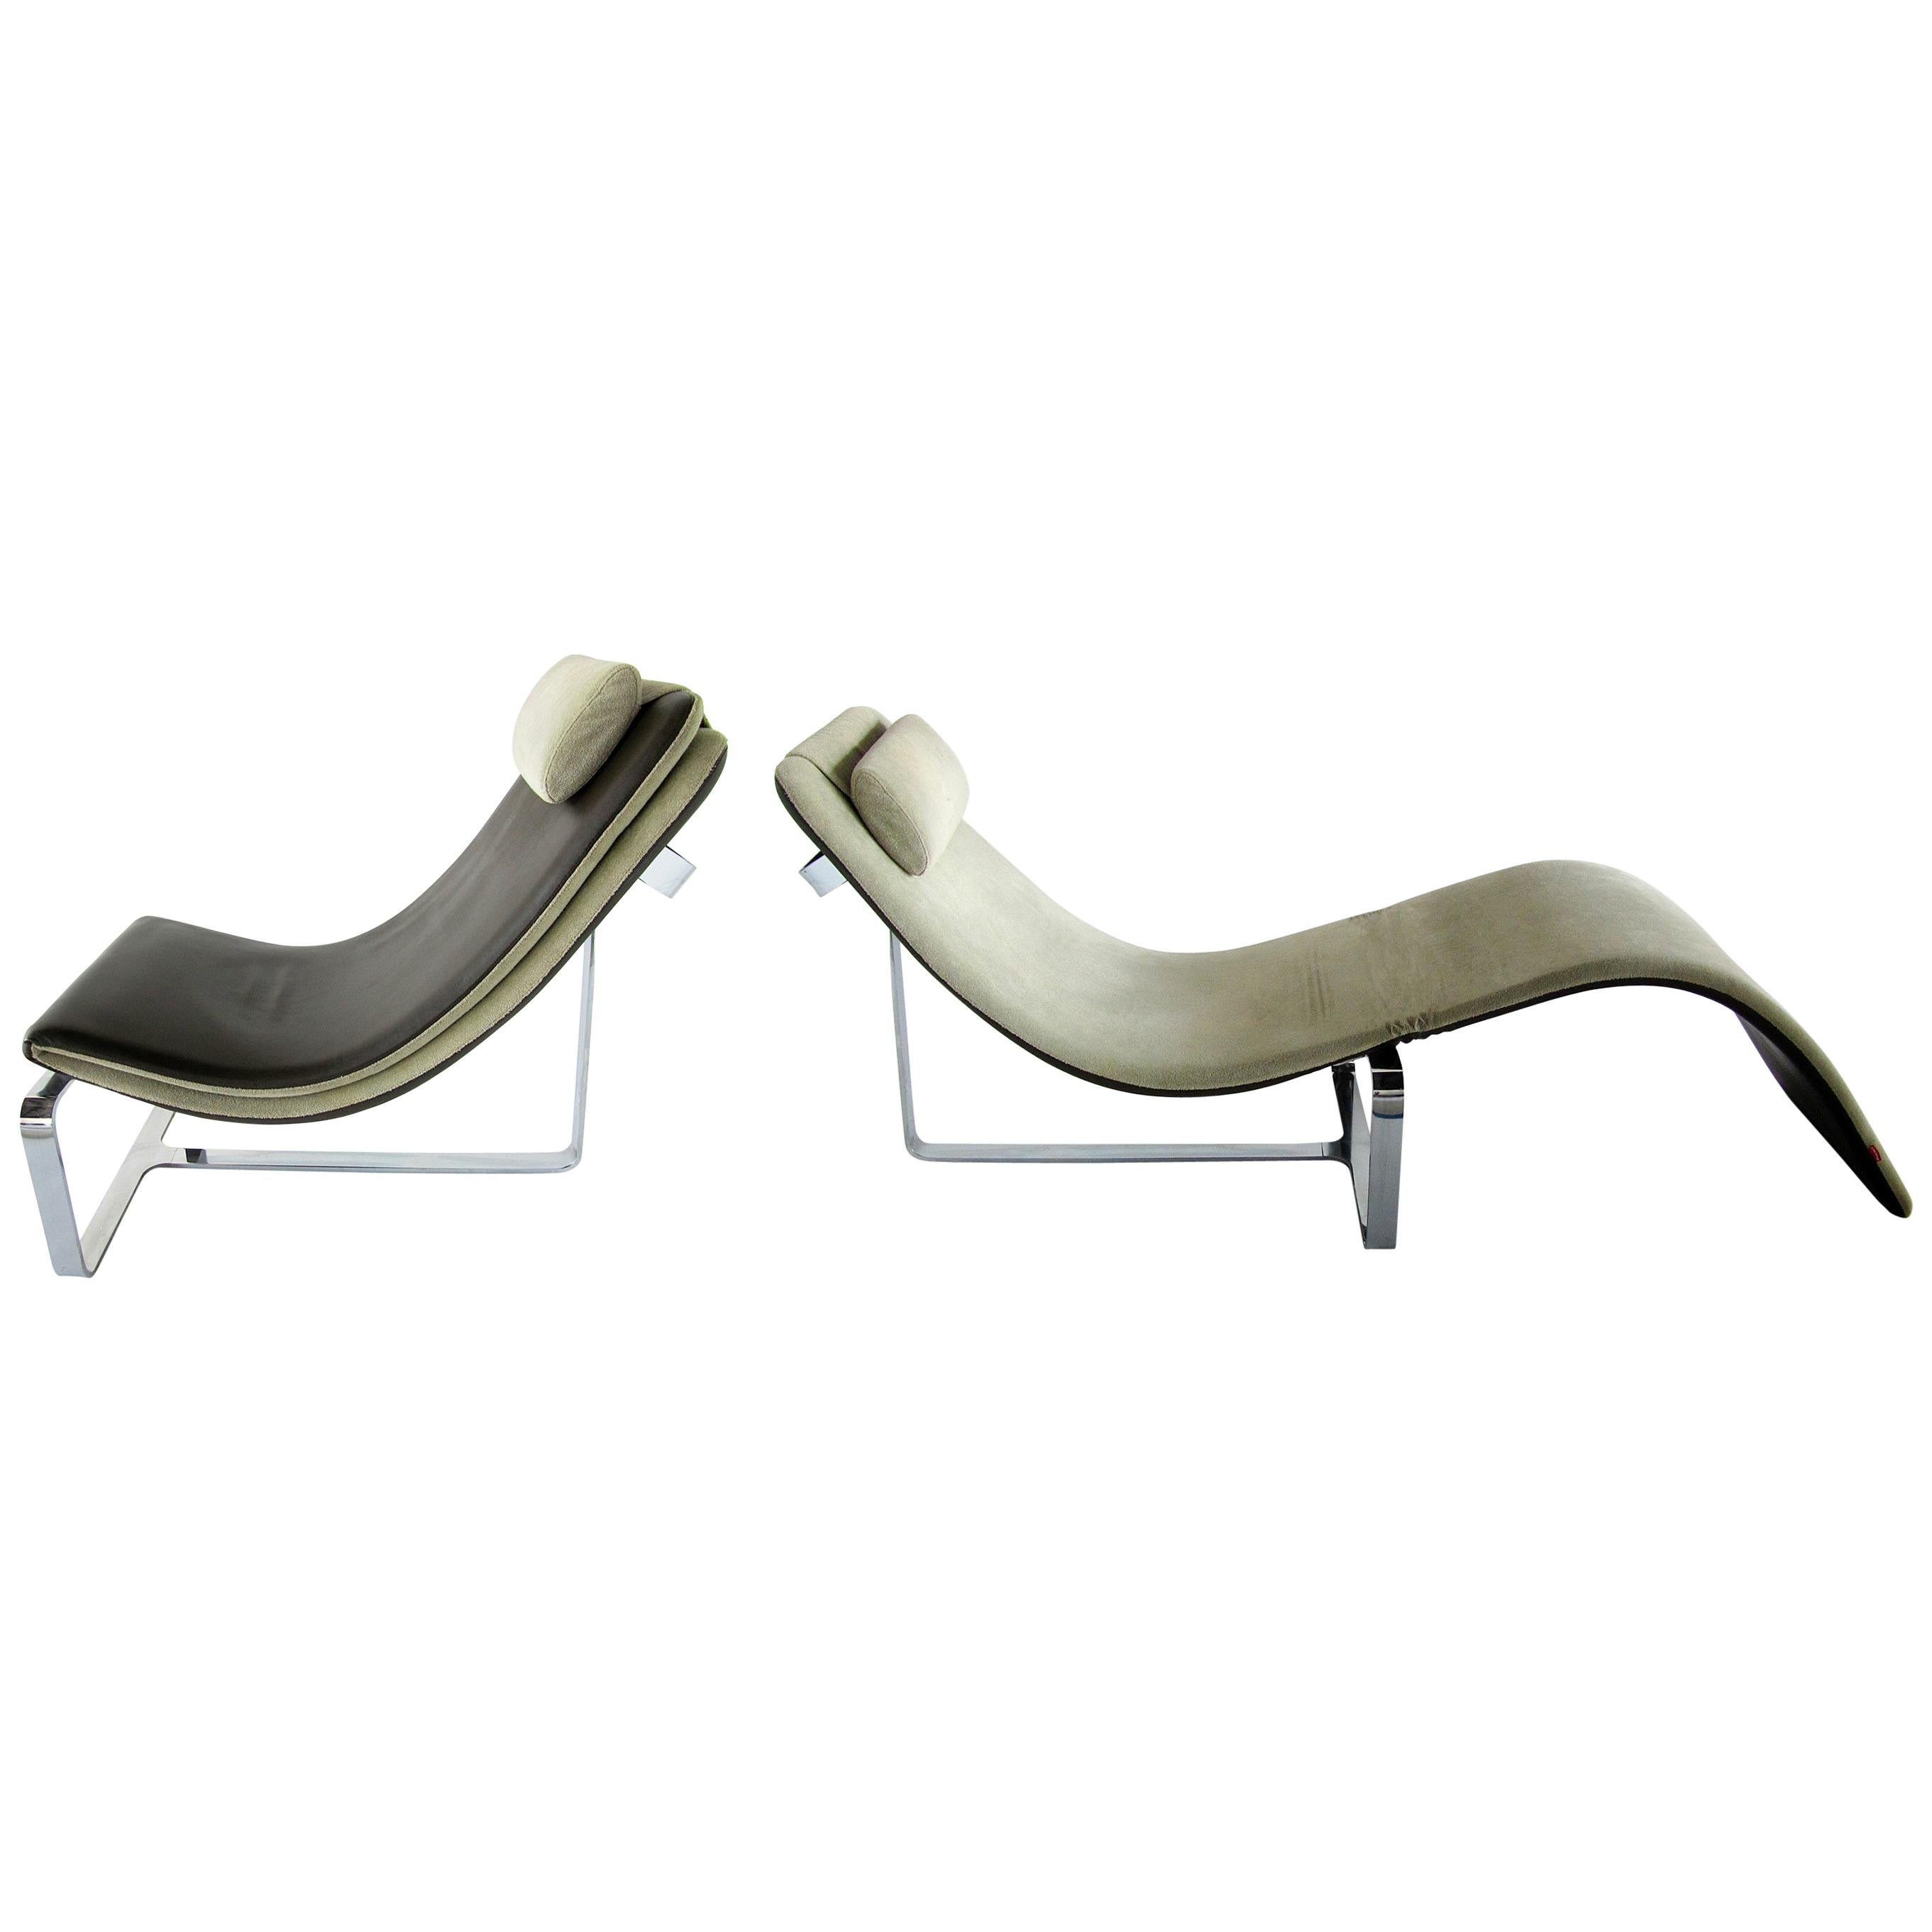 Italian Modern Polished Chrome, Leather and Chenille Chaise Lounge/Chair